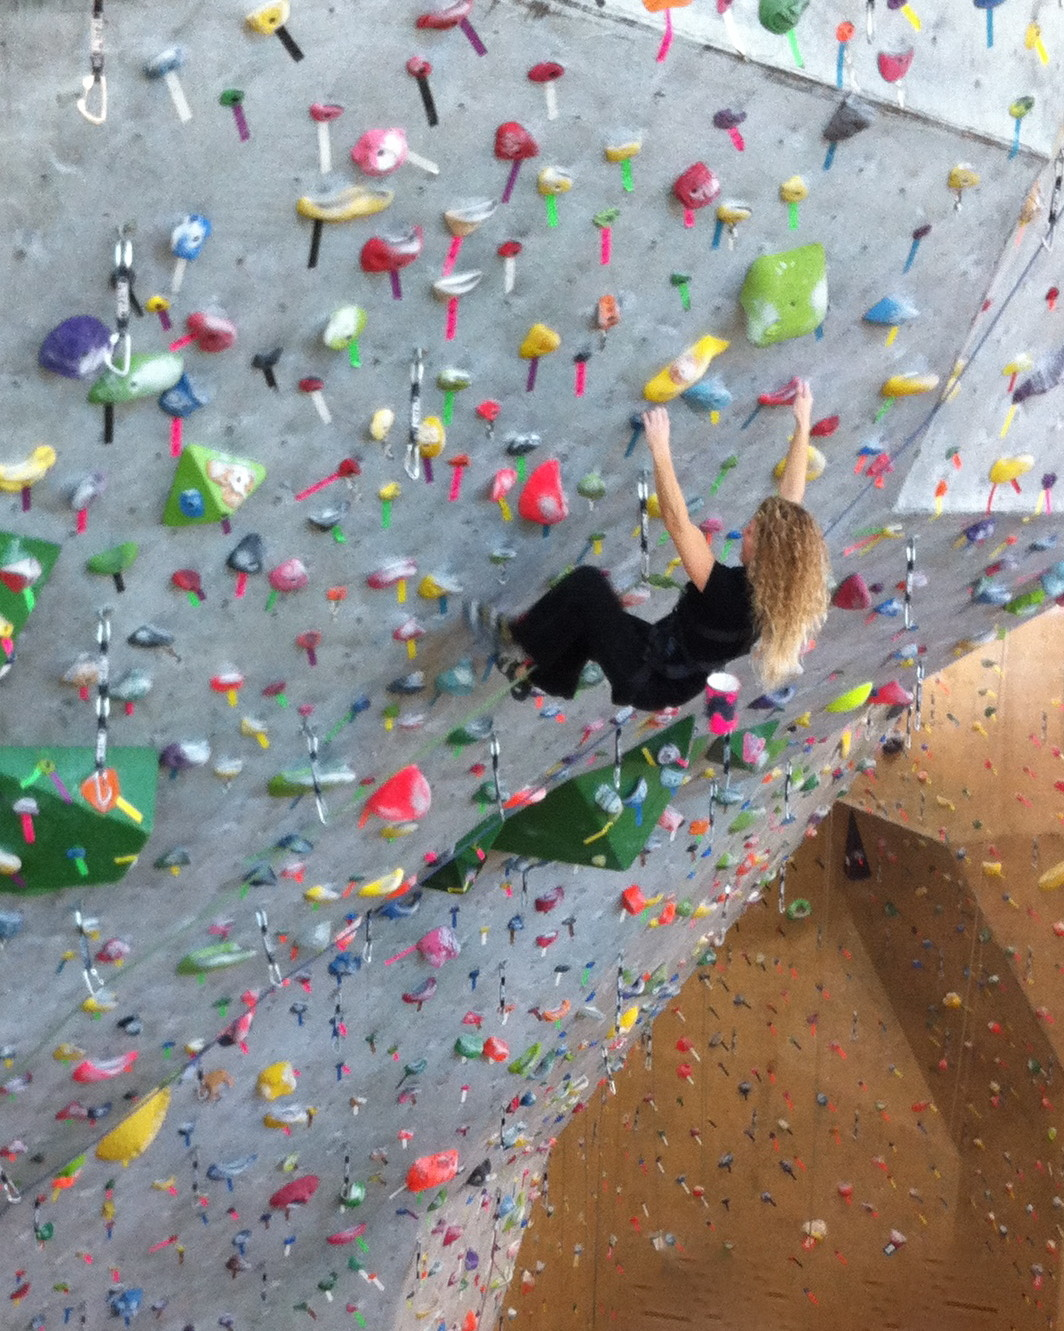 Rock Climbing and Pregnancy: What Changes to Expect | Cragmama